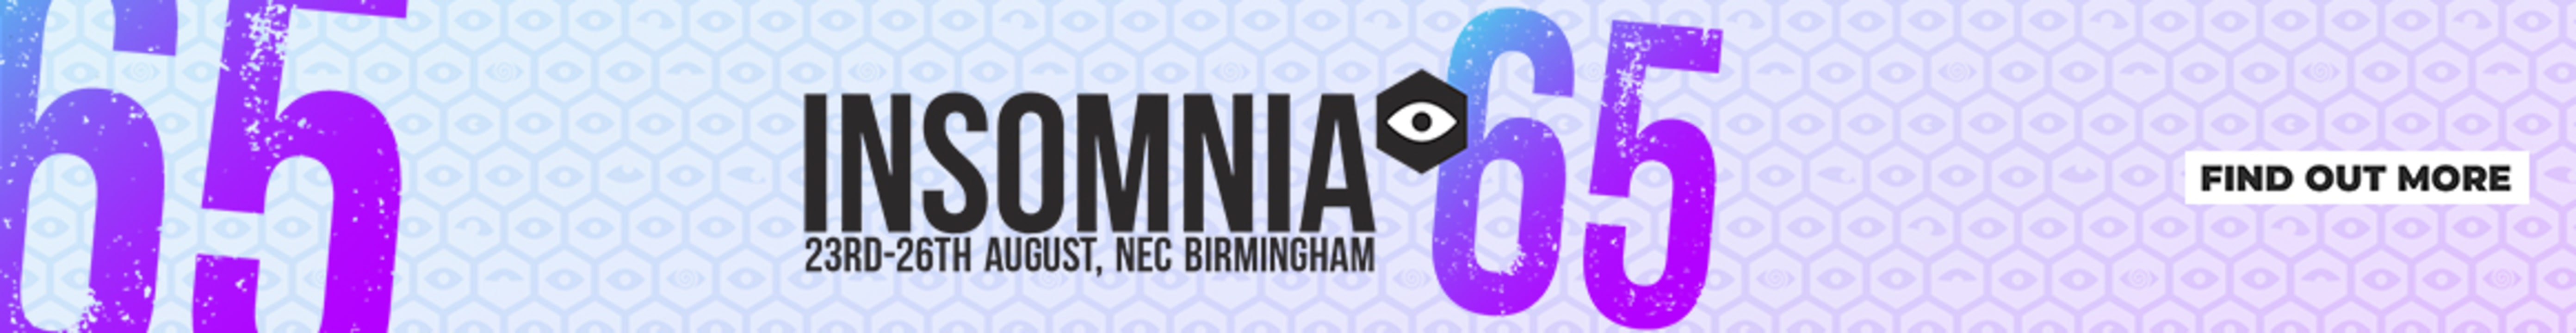 Find Out More About Insomnia 65